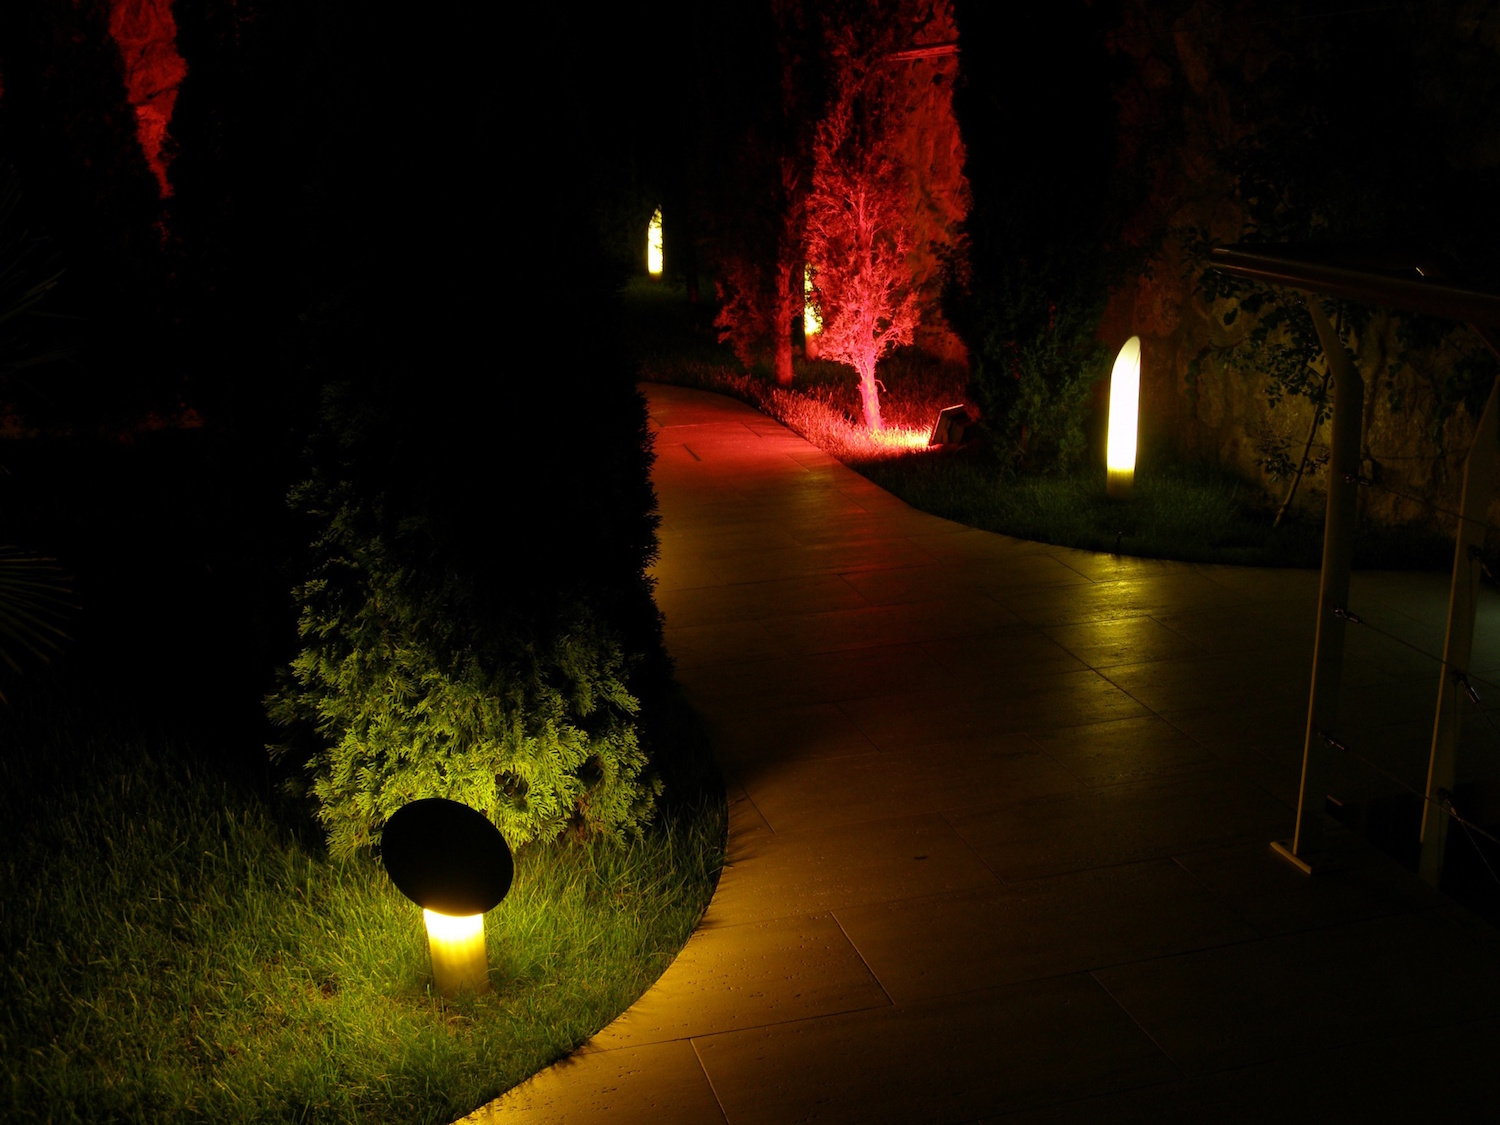 Pathway lights can be beautiful, but there are dozens to choose from. These are our suggestions for pathway lighting designs to brighten up your home.